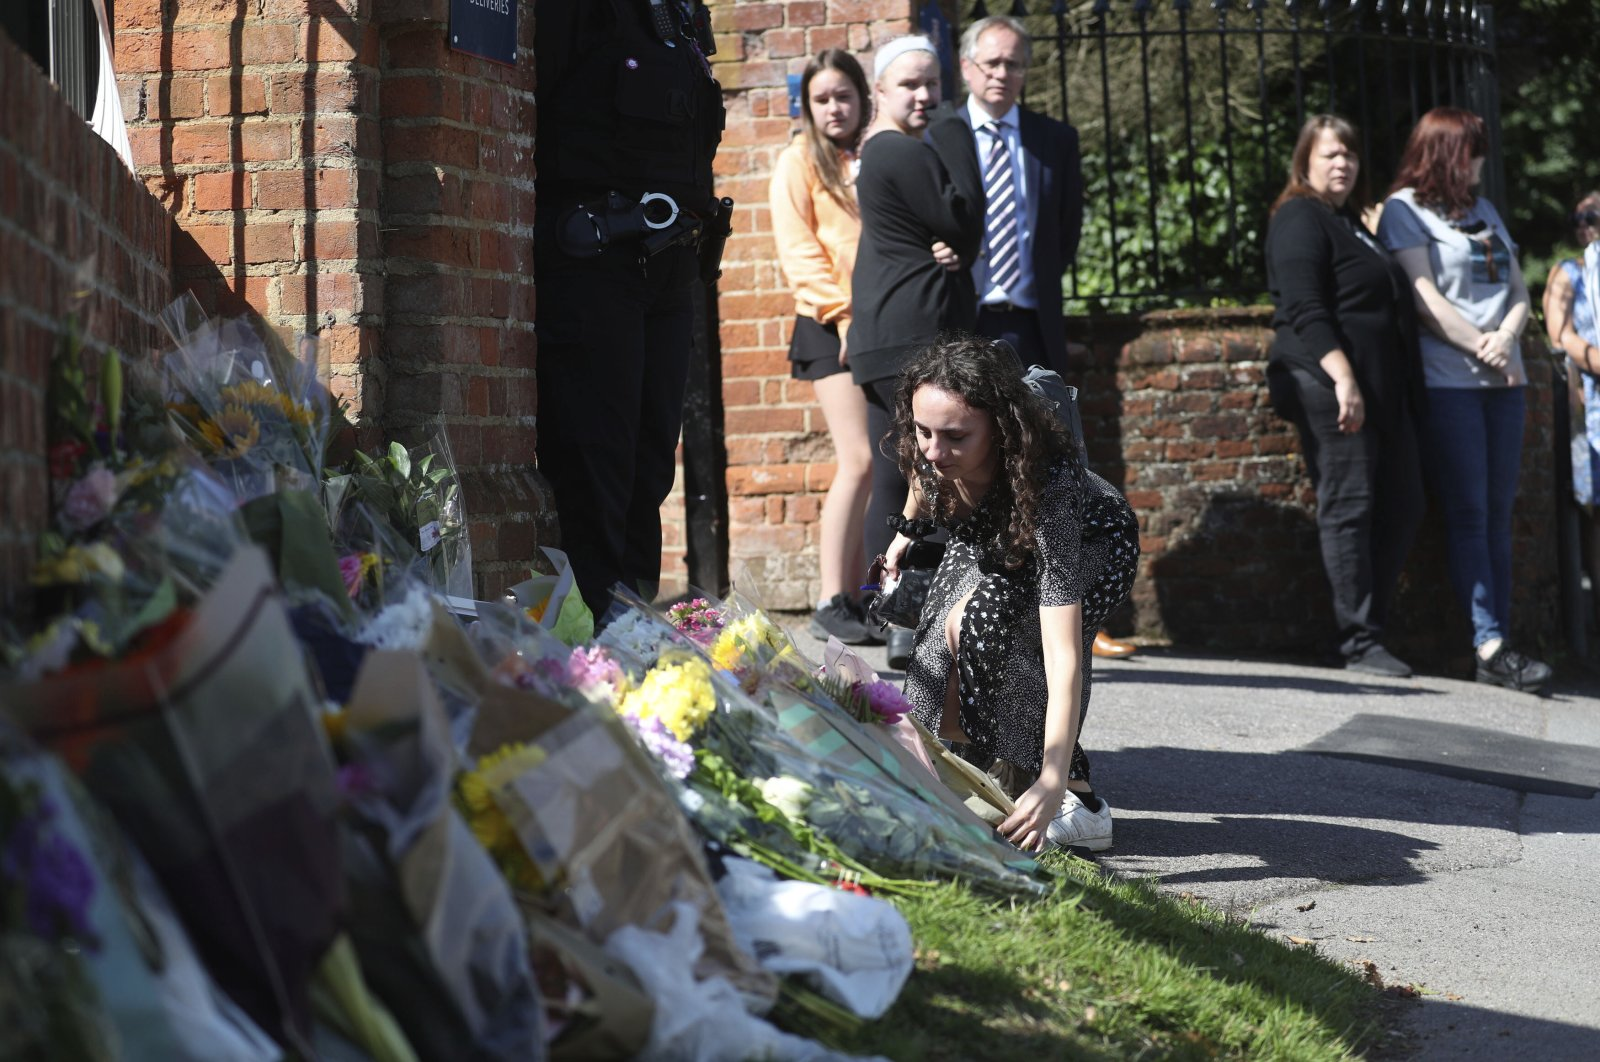 Flowers are placed at the entrance to the Holt School in memory of teacher James Furlong, a victim of a terror attack in nearby Reading, in Wokingham, England, June 22, 2020. (AP Photo)